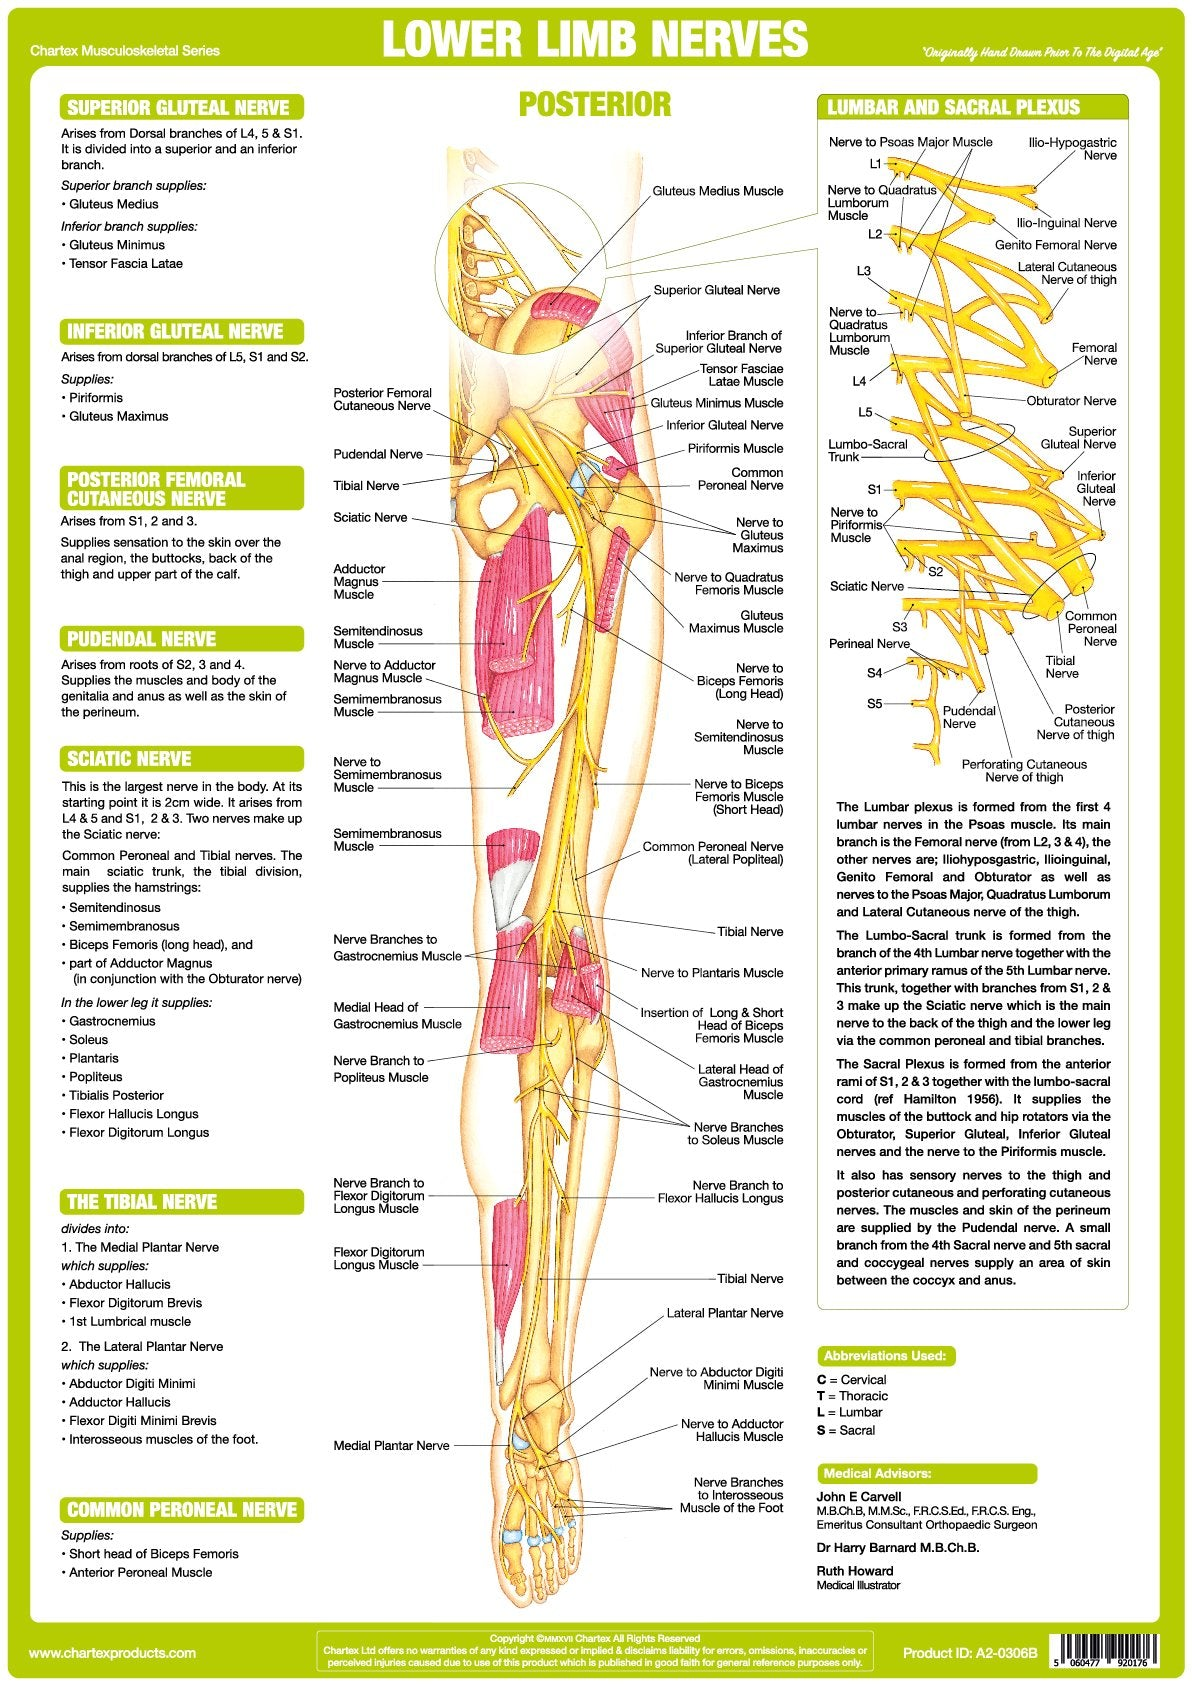 Lower Limb Nerve Anatomy Chart - Posterior – Chartex Ltd